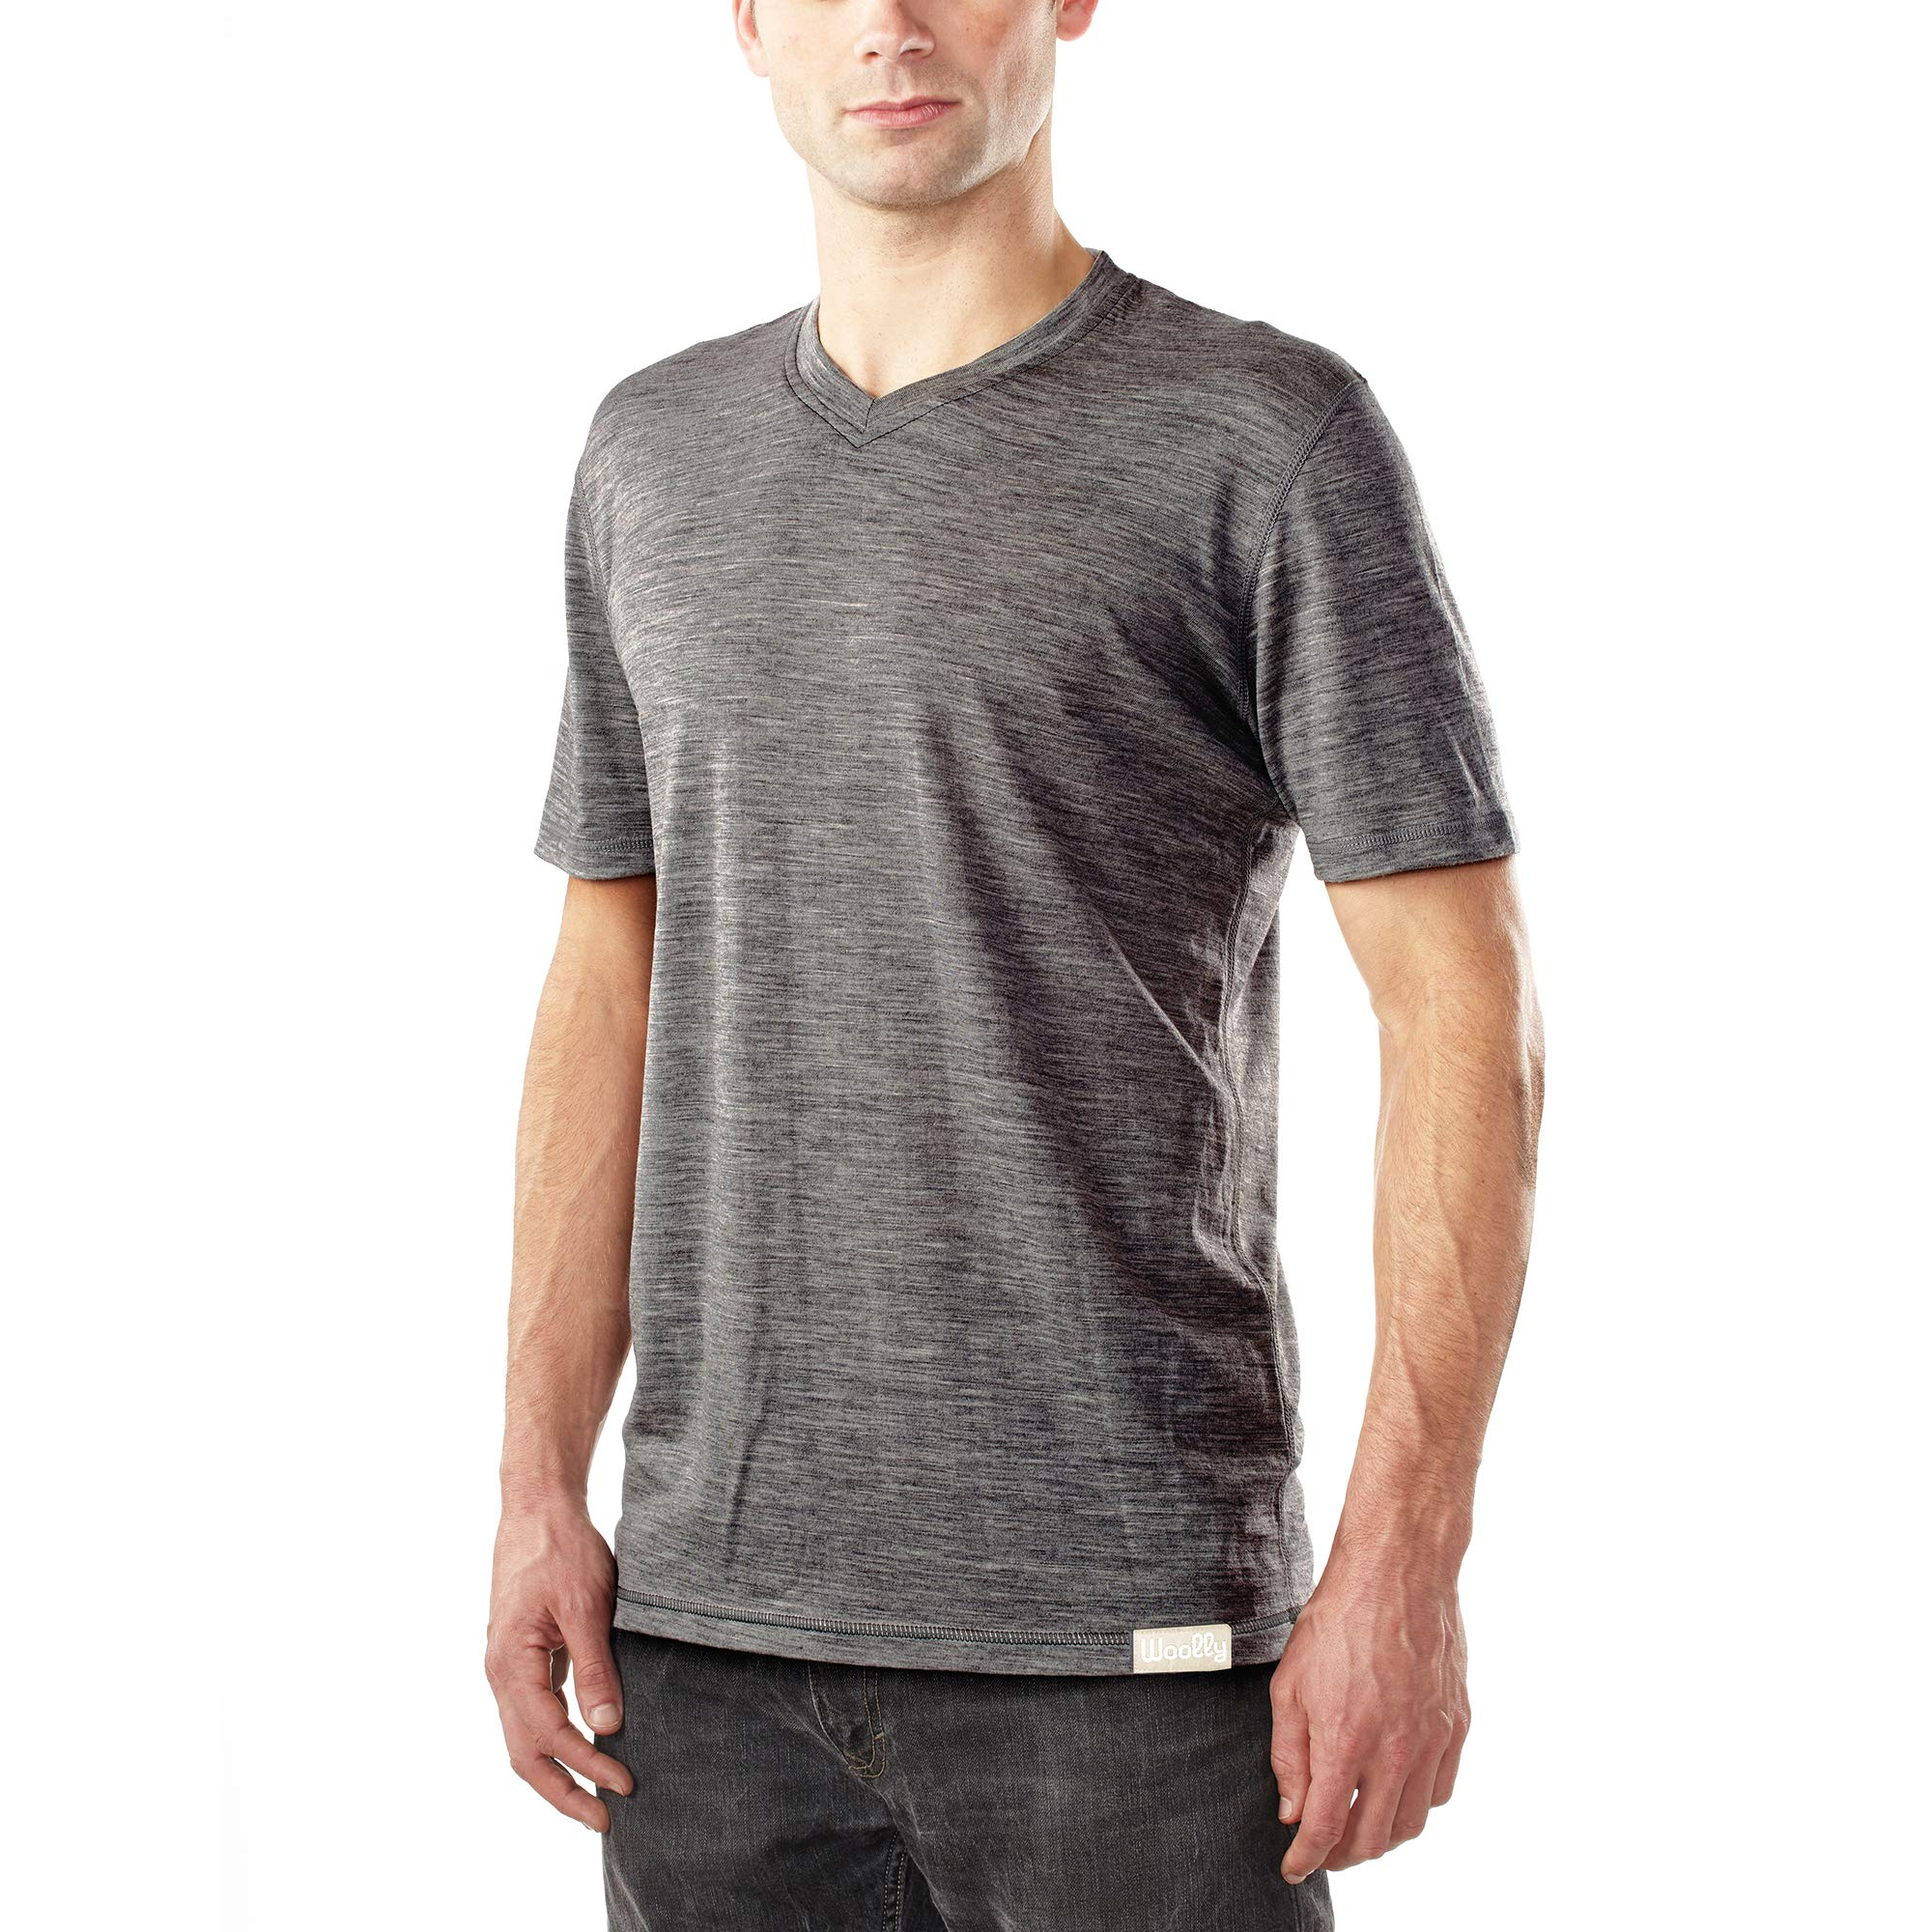 Woolly Clothing Men's Merino Wool V-Neck Tee Shirt – Everyday Weight – Wicking Breathable Anti-Odor